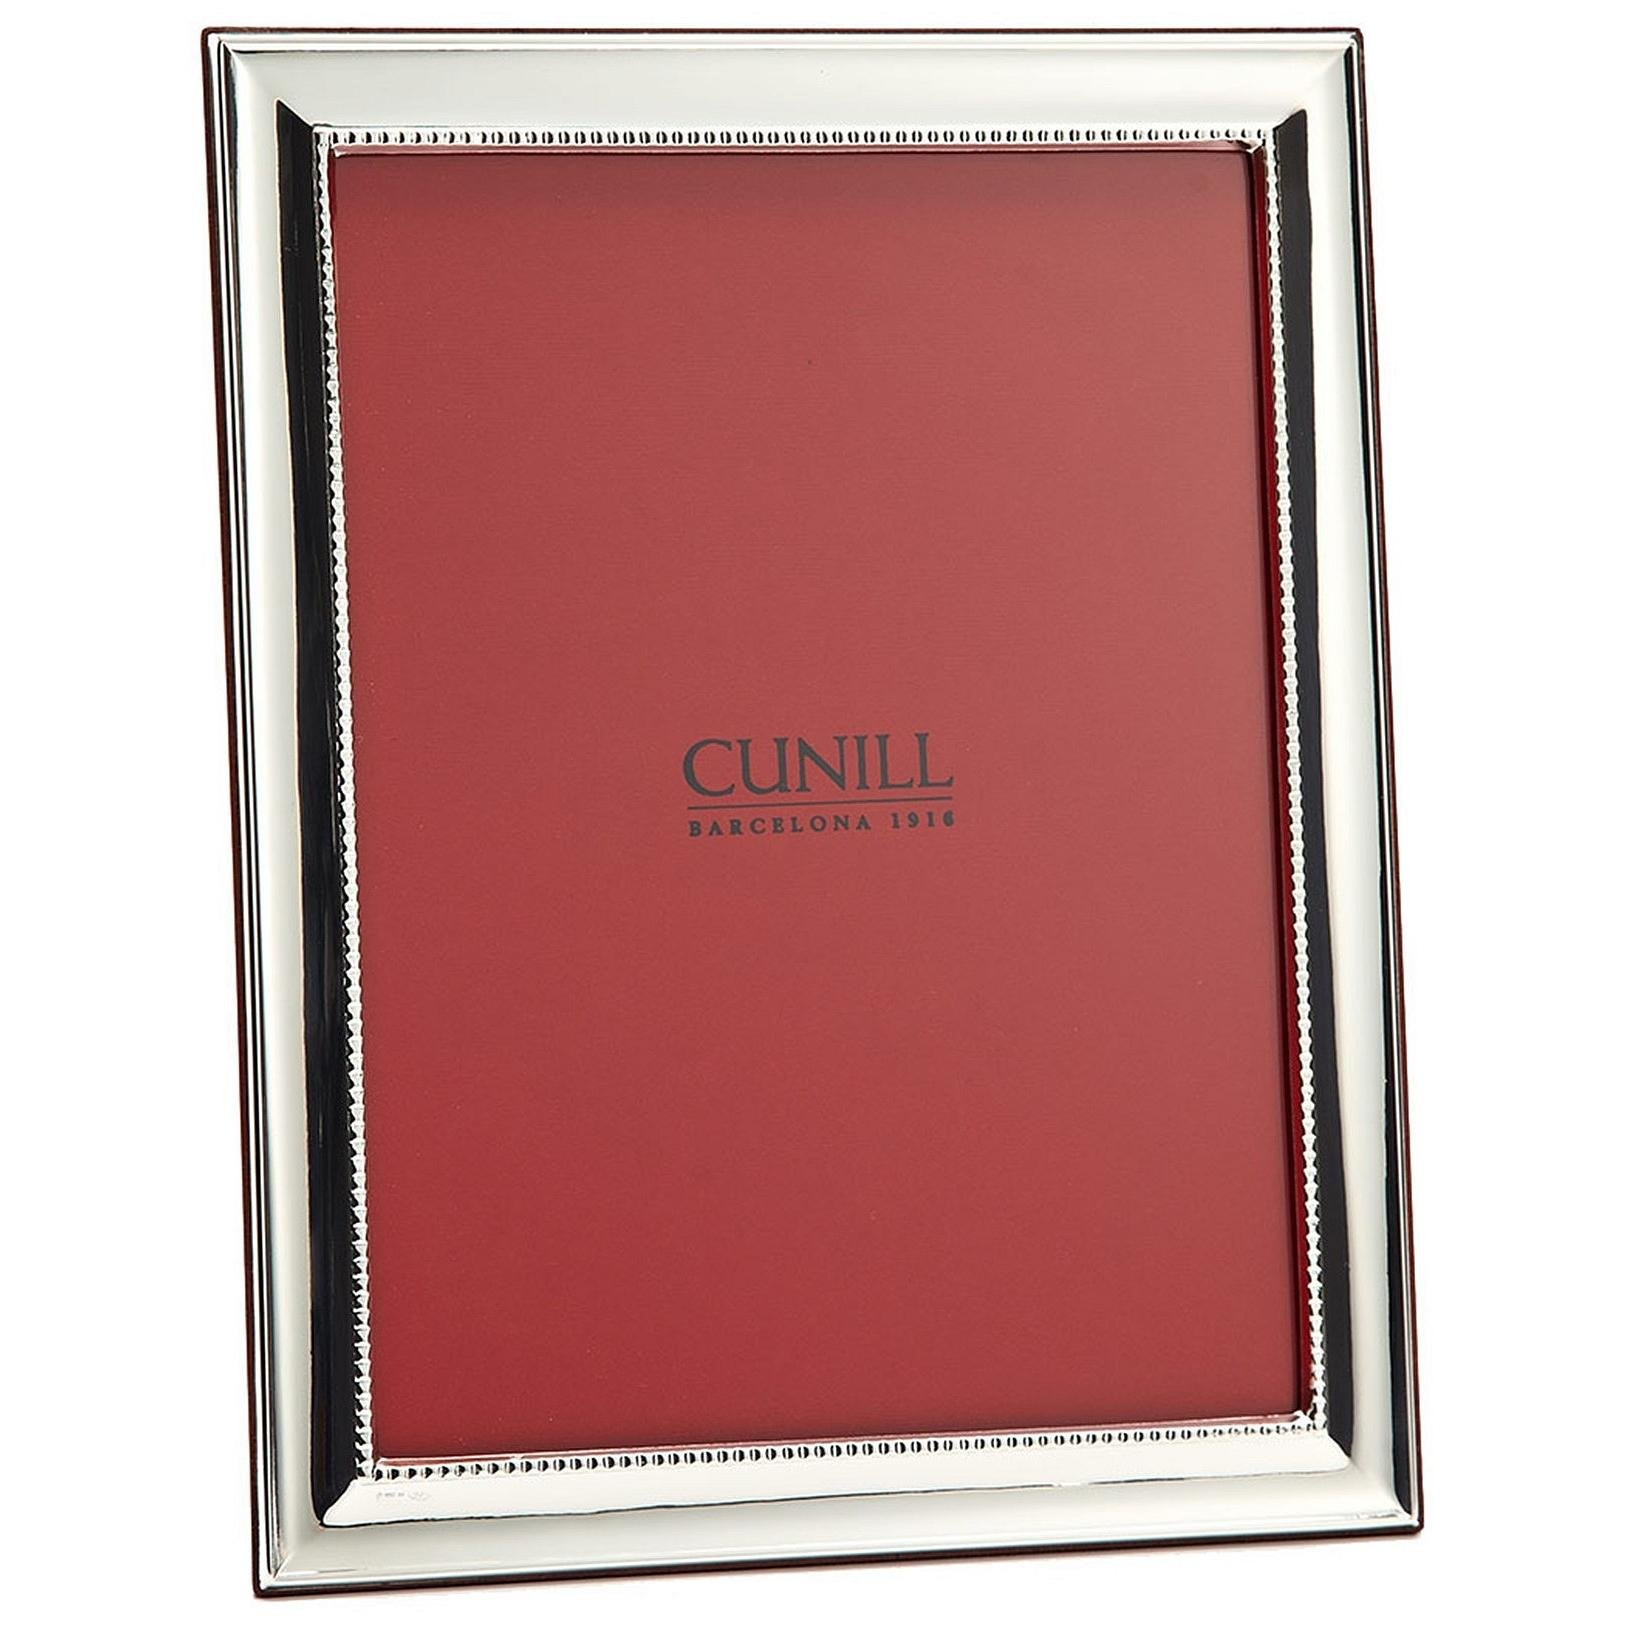 GROOVE II Fine Sterling Silver frame by Cunill - 8x10 by Cunill Silver Barcelona®